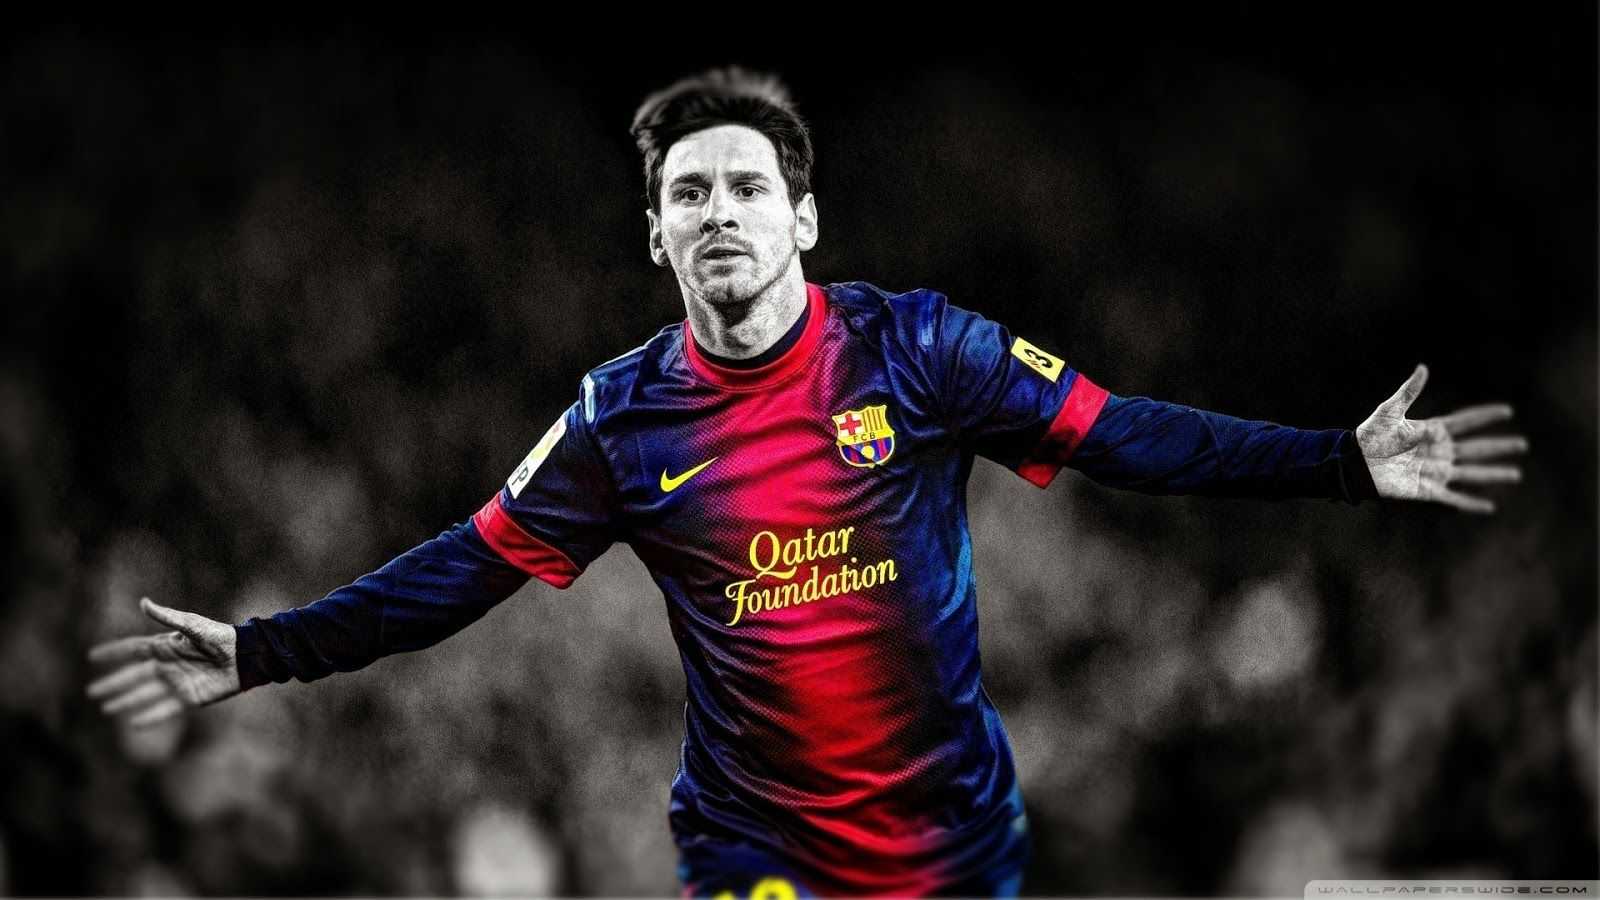 Lionel Messi  Wallpapers and Backgrounds  HD Images, HD 1600x900